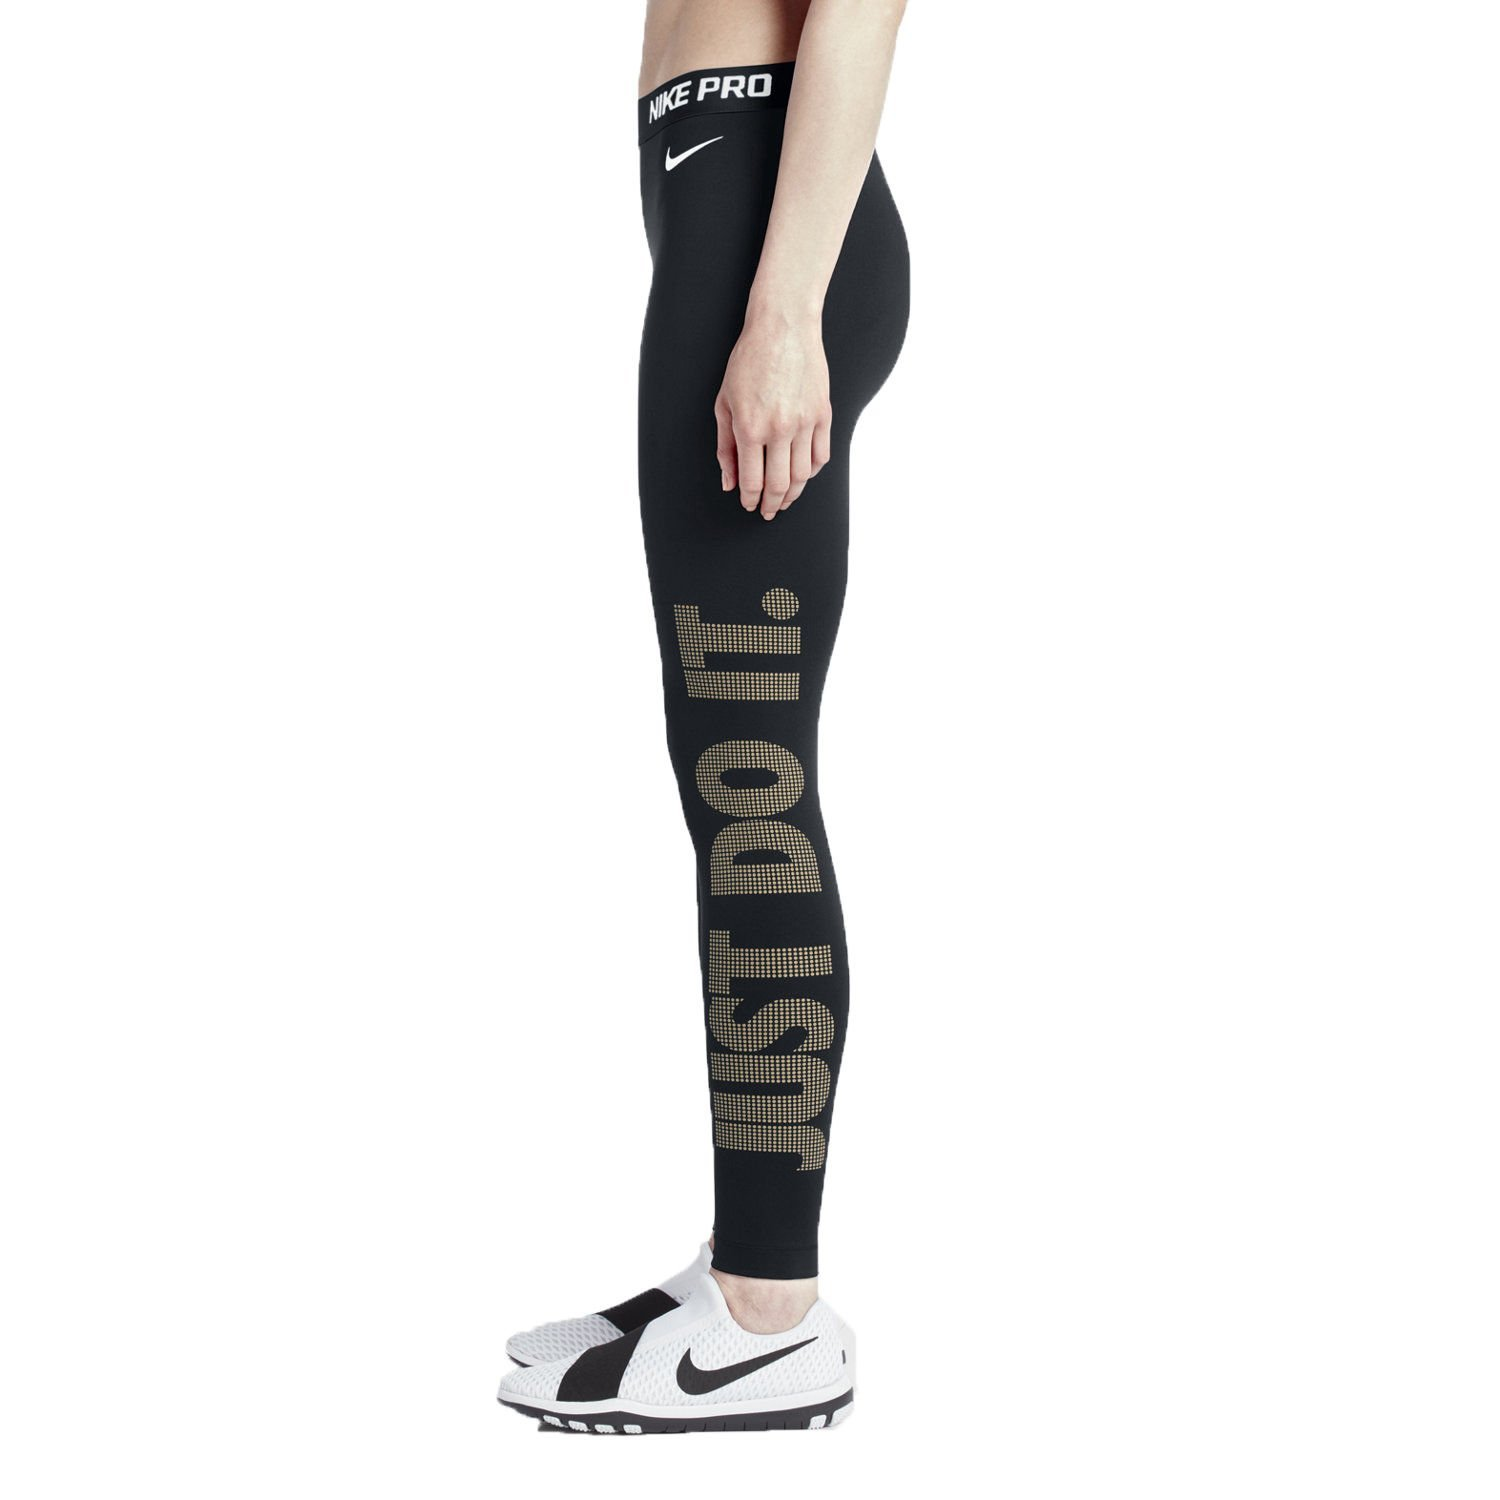 8d8441faccdb Get Quotations · Nike Pro Warm Women s Graphic Training Tights (Large